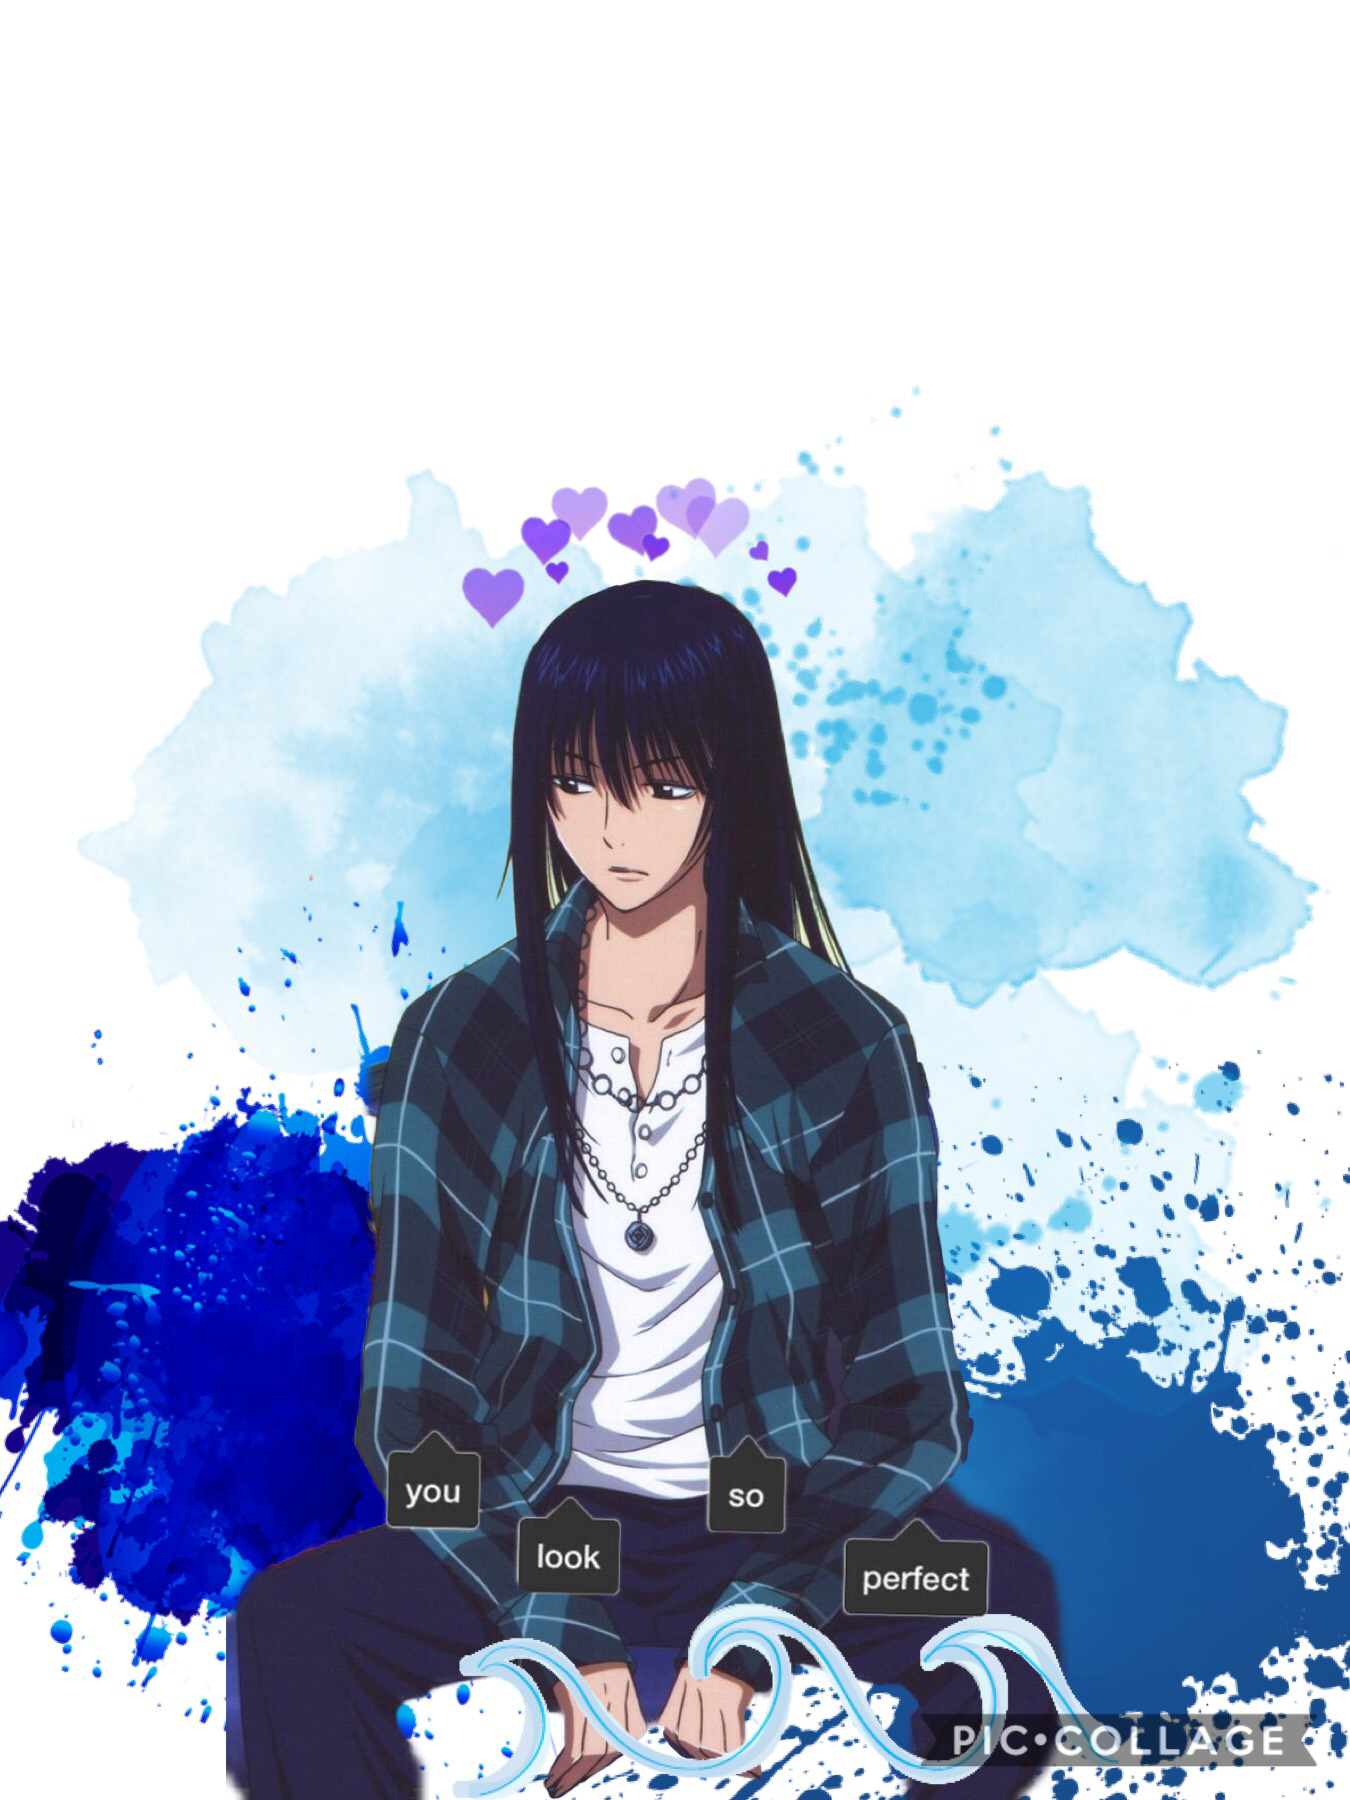 This is kanda from D.gray man (tap)  He is my manz and my friends manz we share him lol